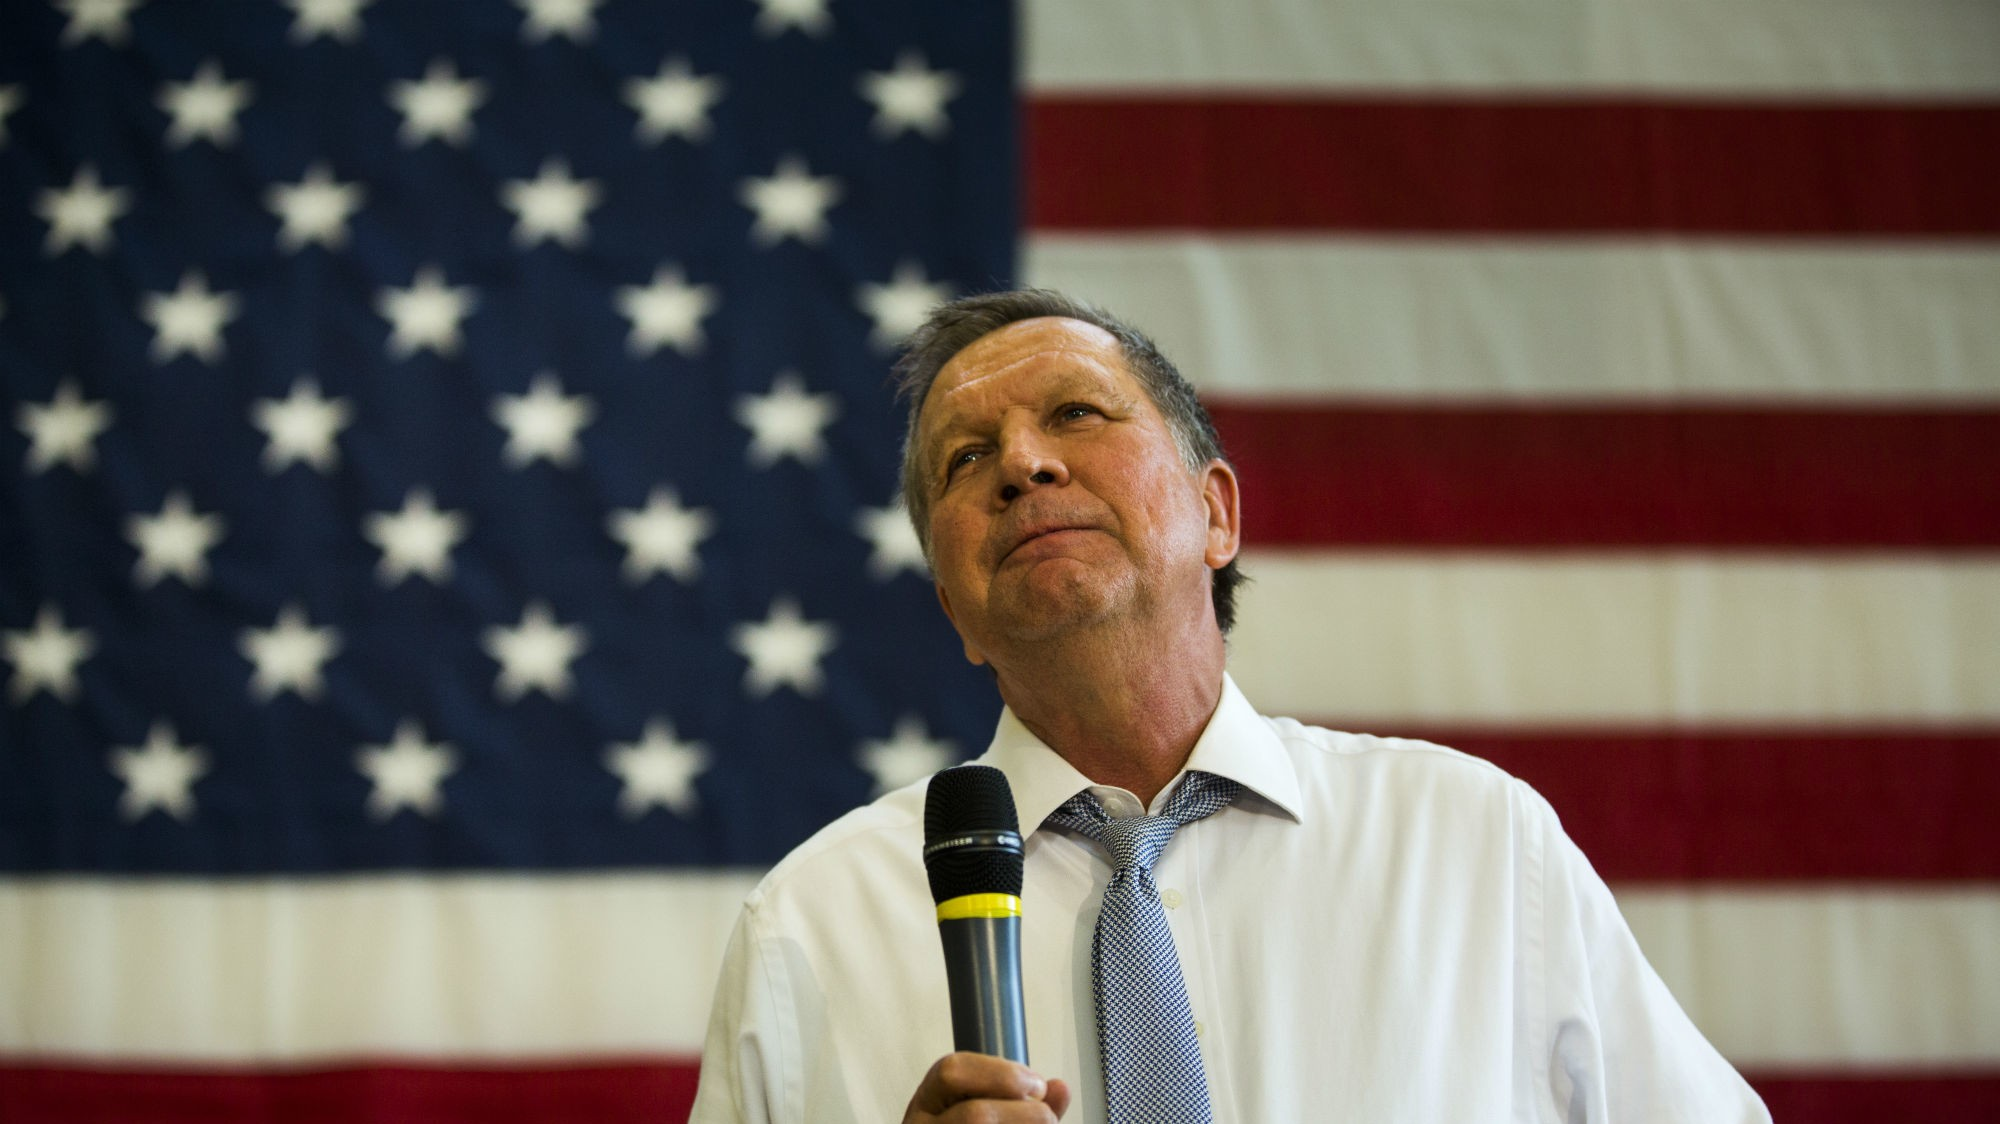 Emotional John Kasich Ends His Presidential Campaign